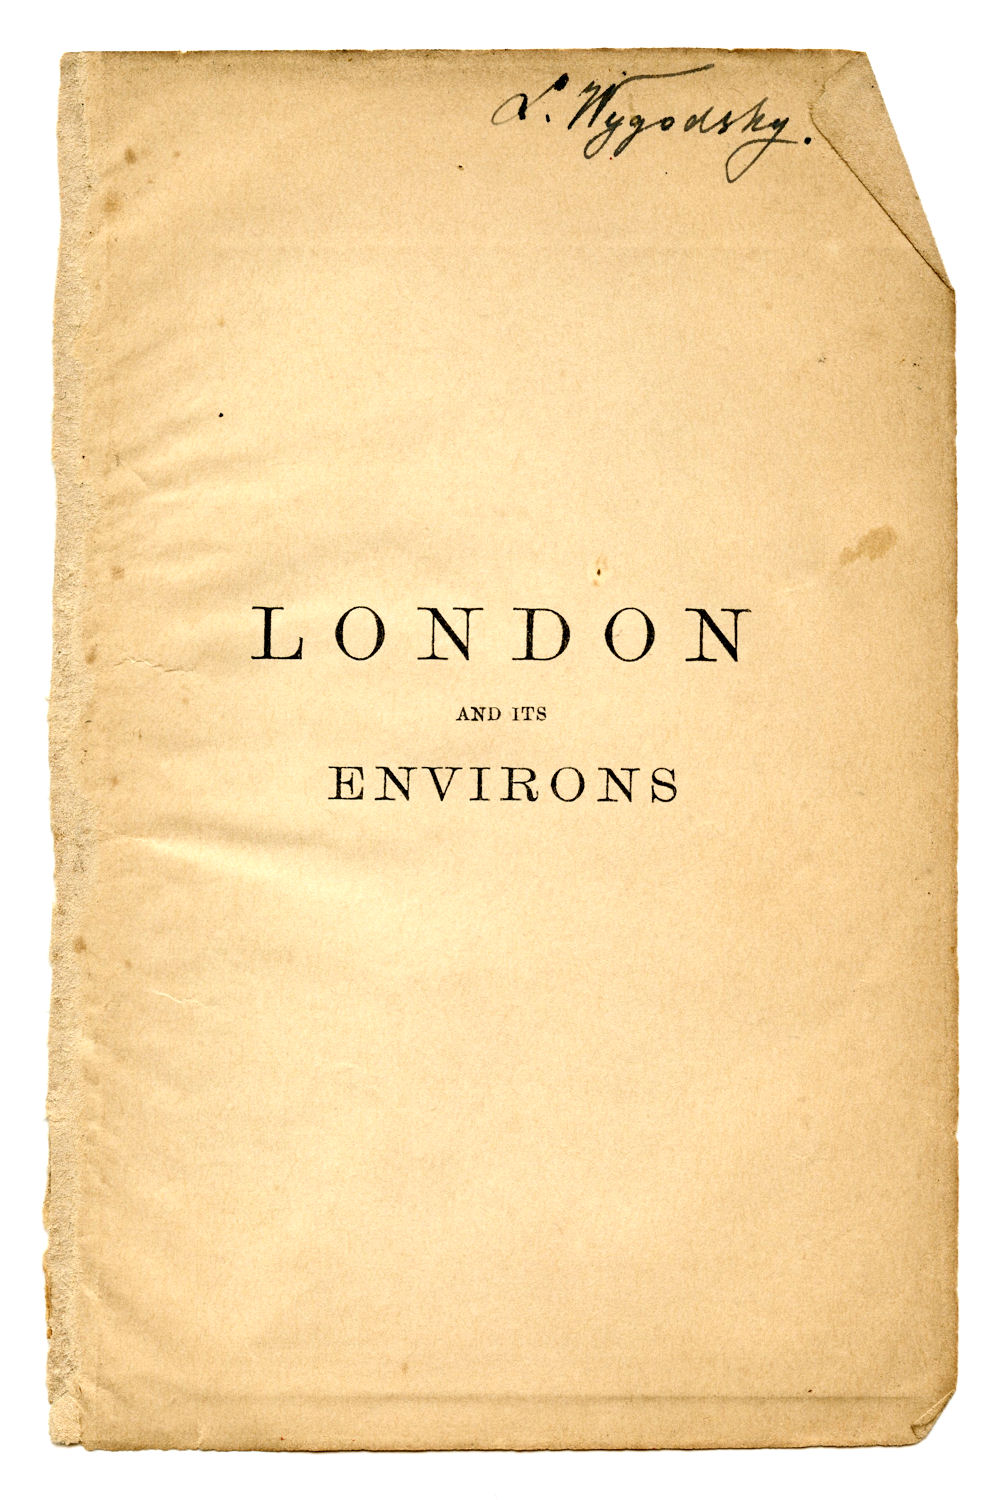 Vintage Clip Art - Old London Guide Book - The Graphics Fairy